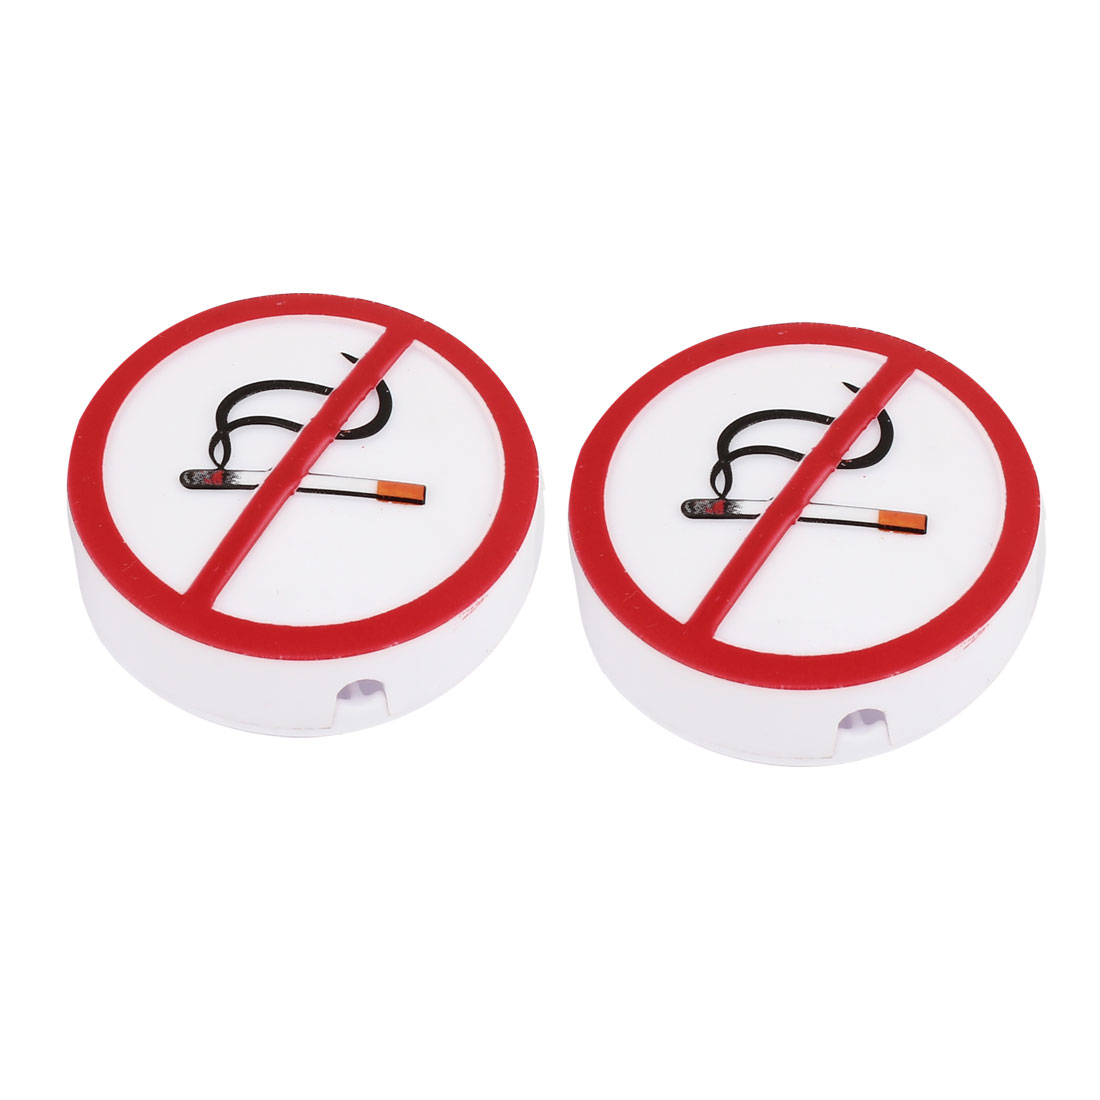 2 Pcs Car Air Vent Adhesive Tape No Smoking Sign Design Fragrance Freshener